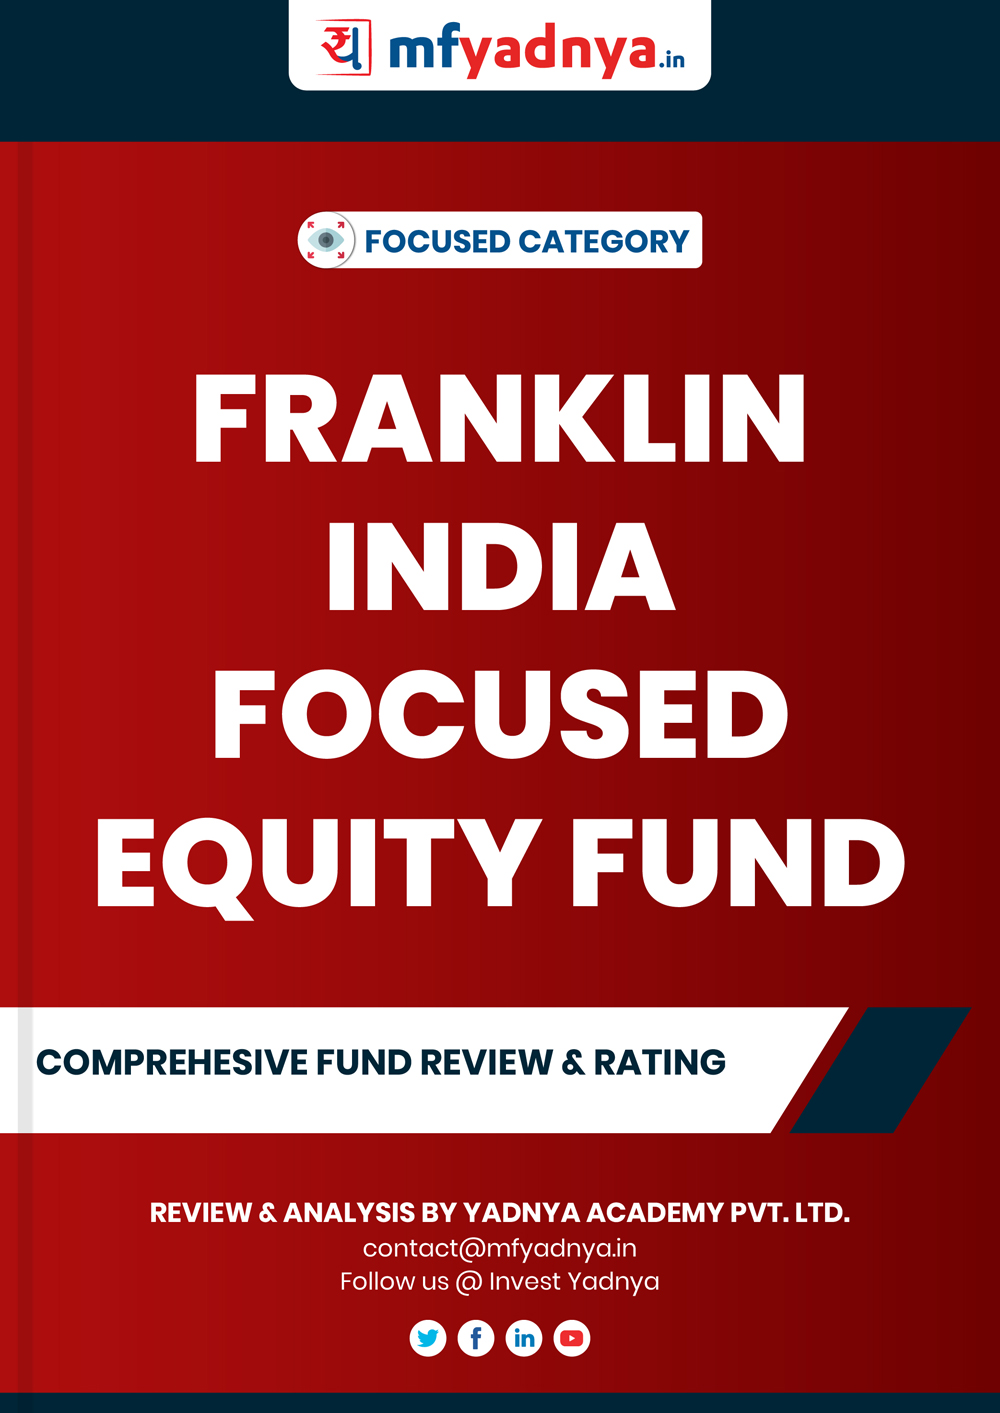 Focused Category Review - Franklin India Focused Equity Fund. Most Comprehensive and detailed MF review based on Yadnya's proprietary methodology of Green, Yellow & Red Star. Detailed Analysis & Review based on May 31st, 2020 data. Review also gives you the historical trend of the performance which will show fund's performance consistency.